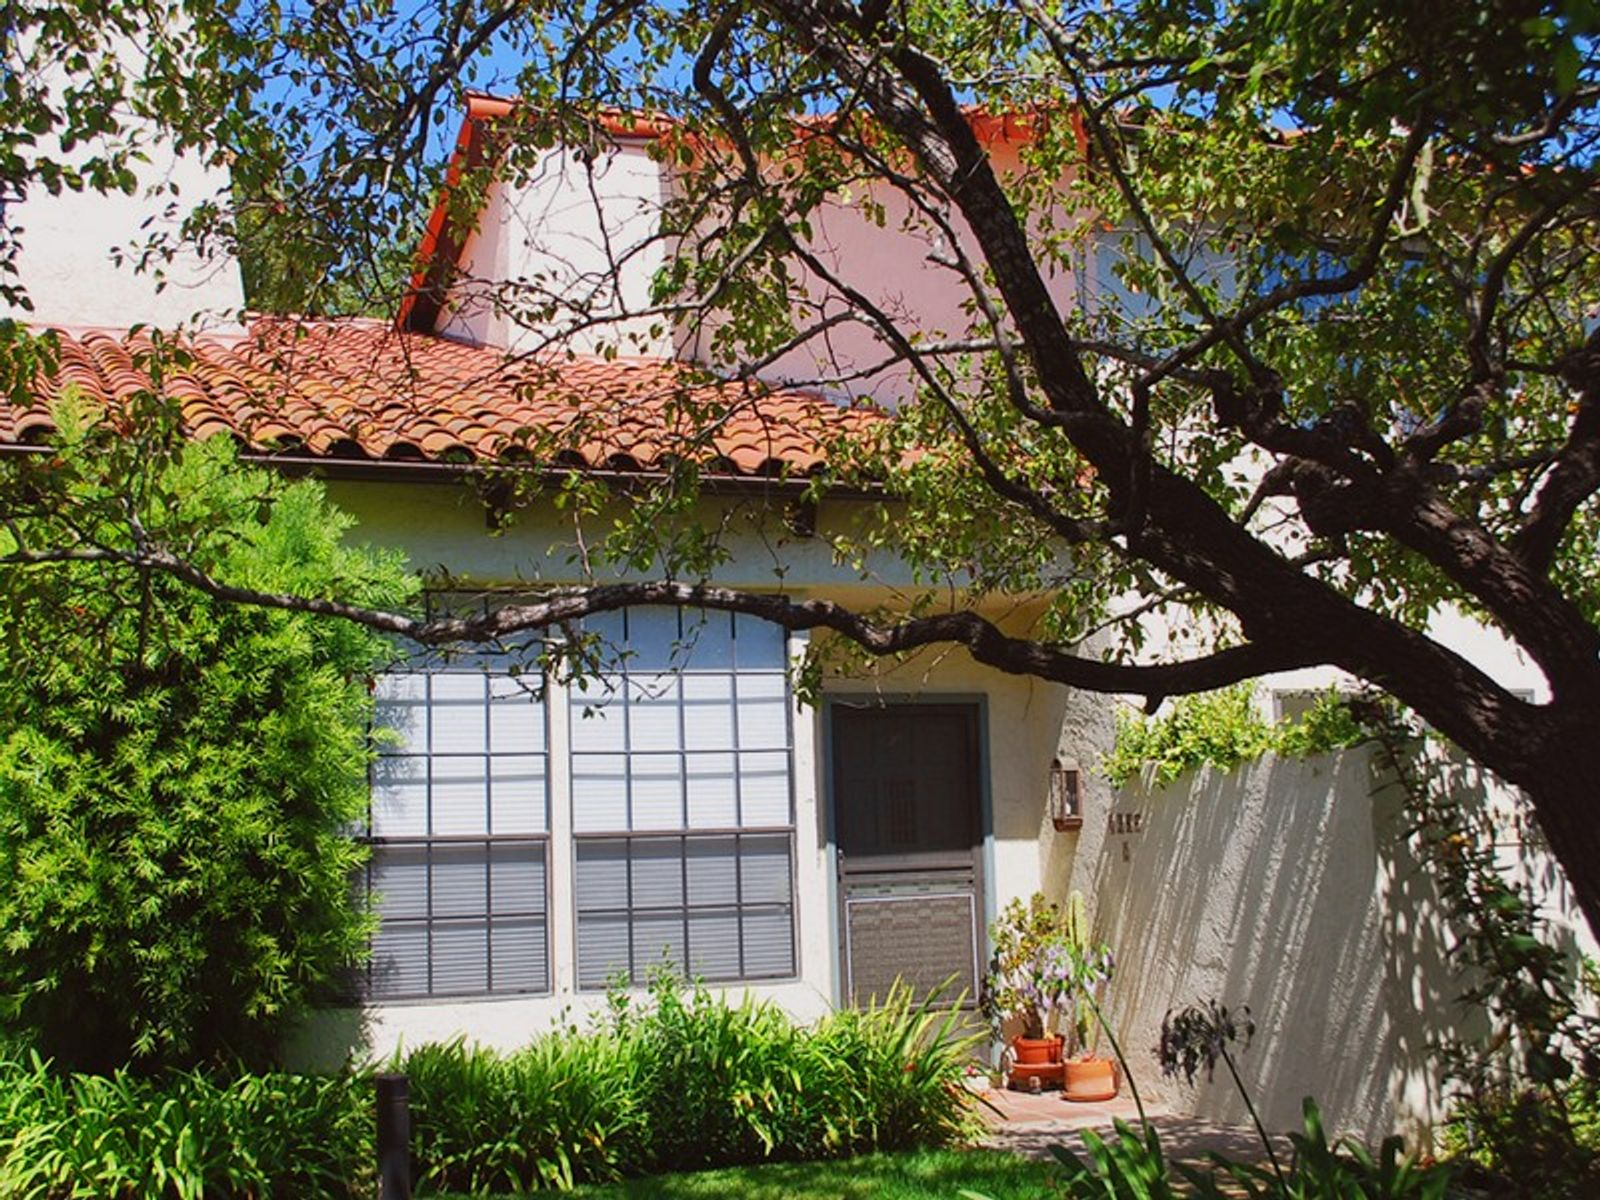 Montecito Three Bedroom Condo, Motecito CA Townhouse - Santa Barbara Real Estate